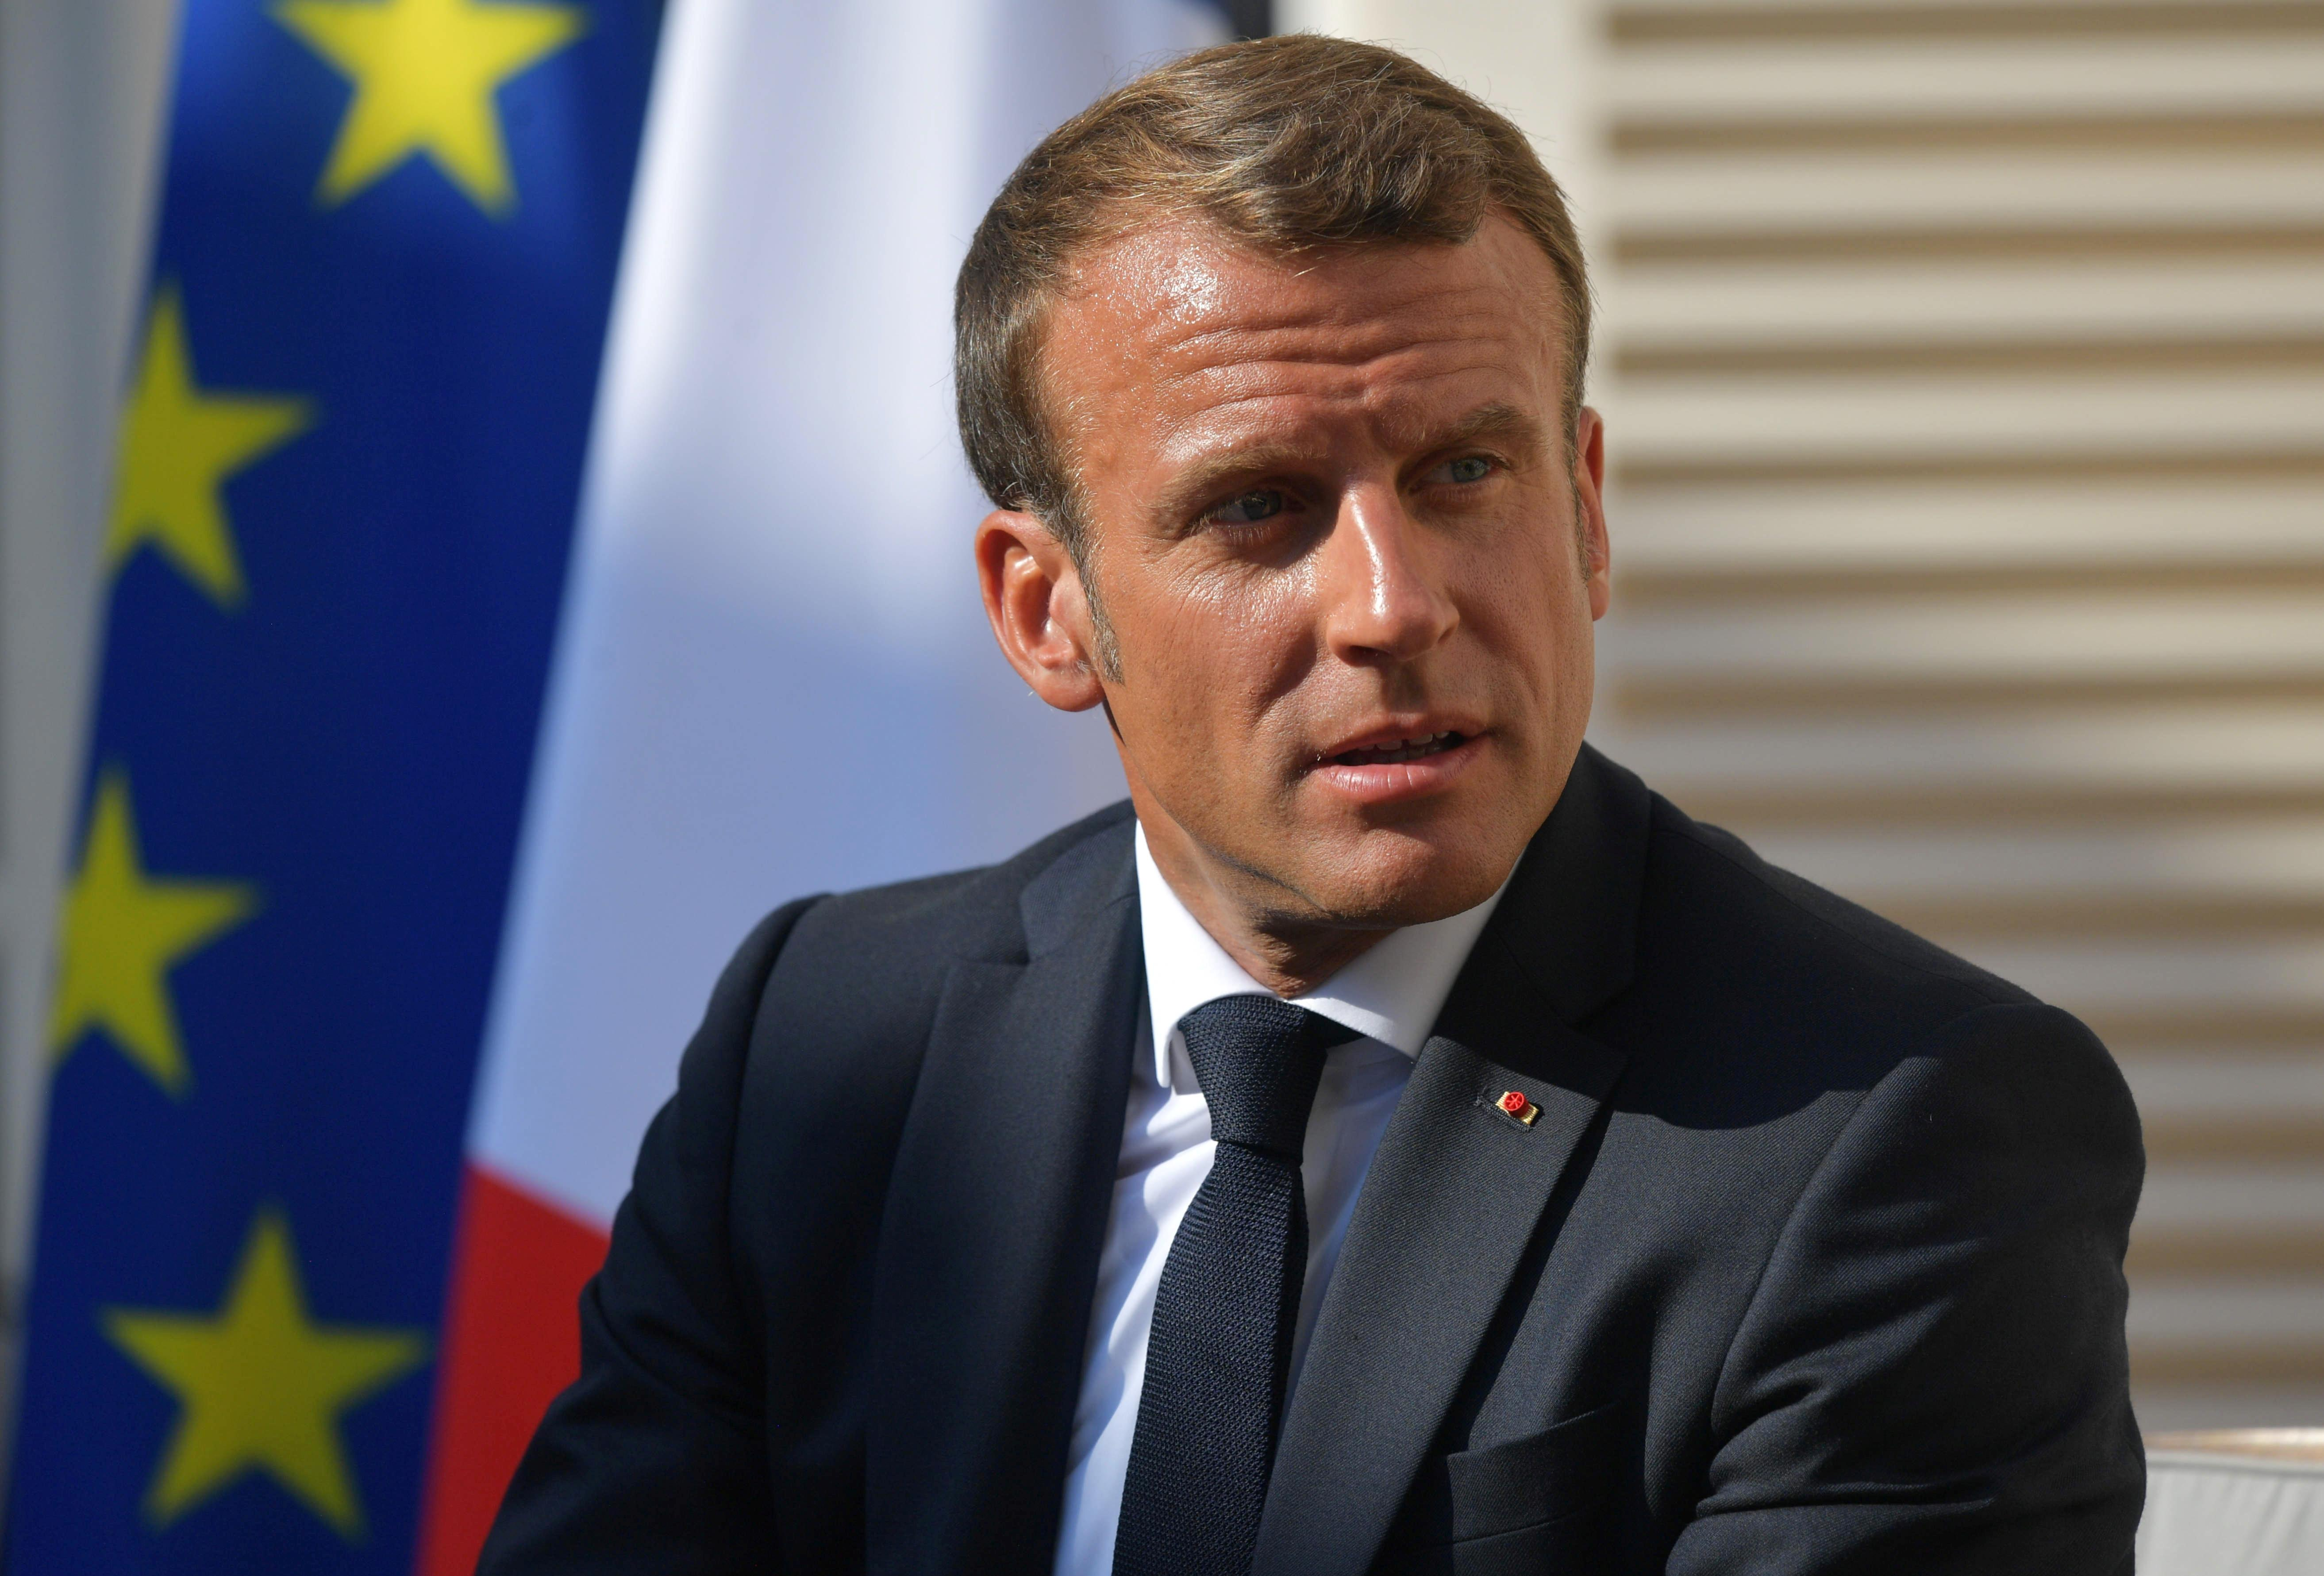 Macron to meet Iranians before G7 to float ideas for defusing crisis